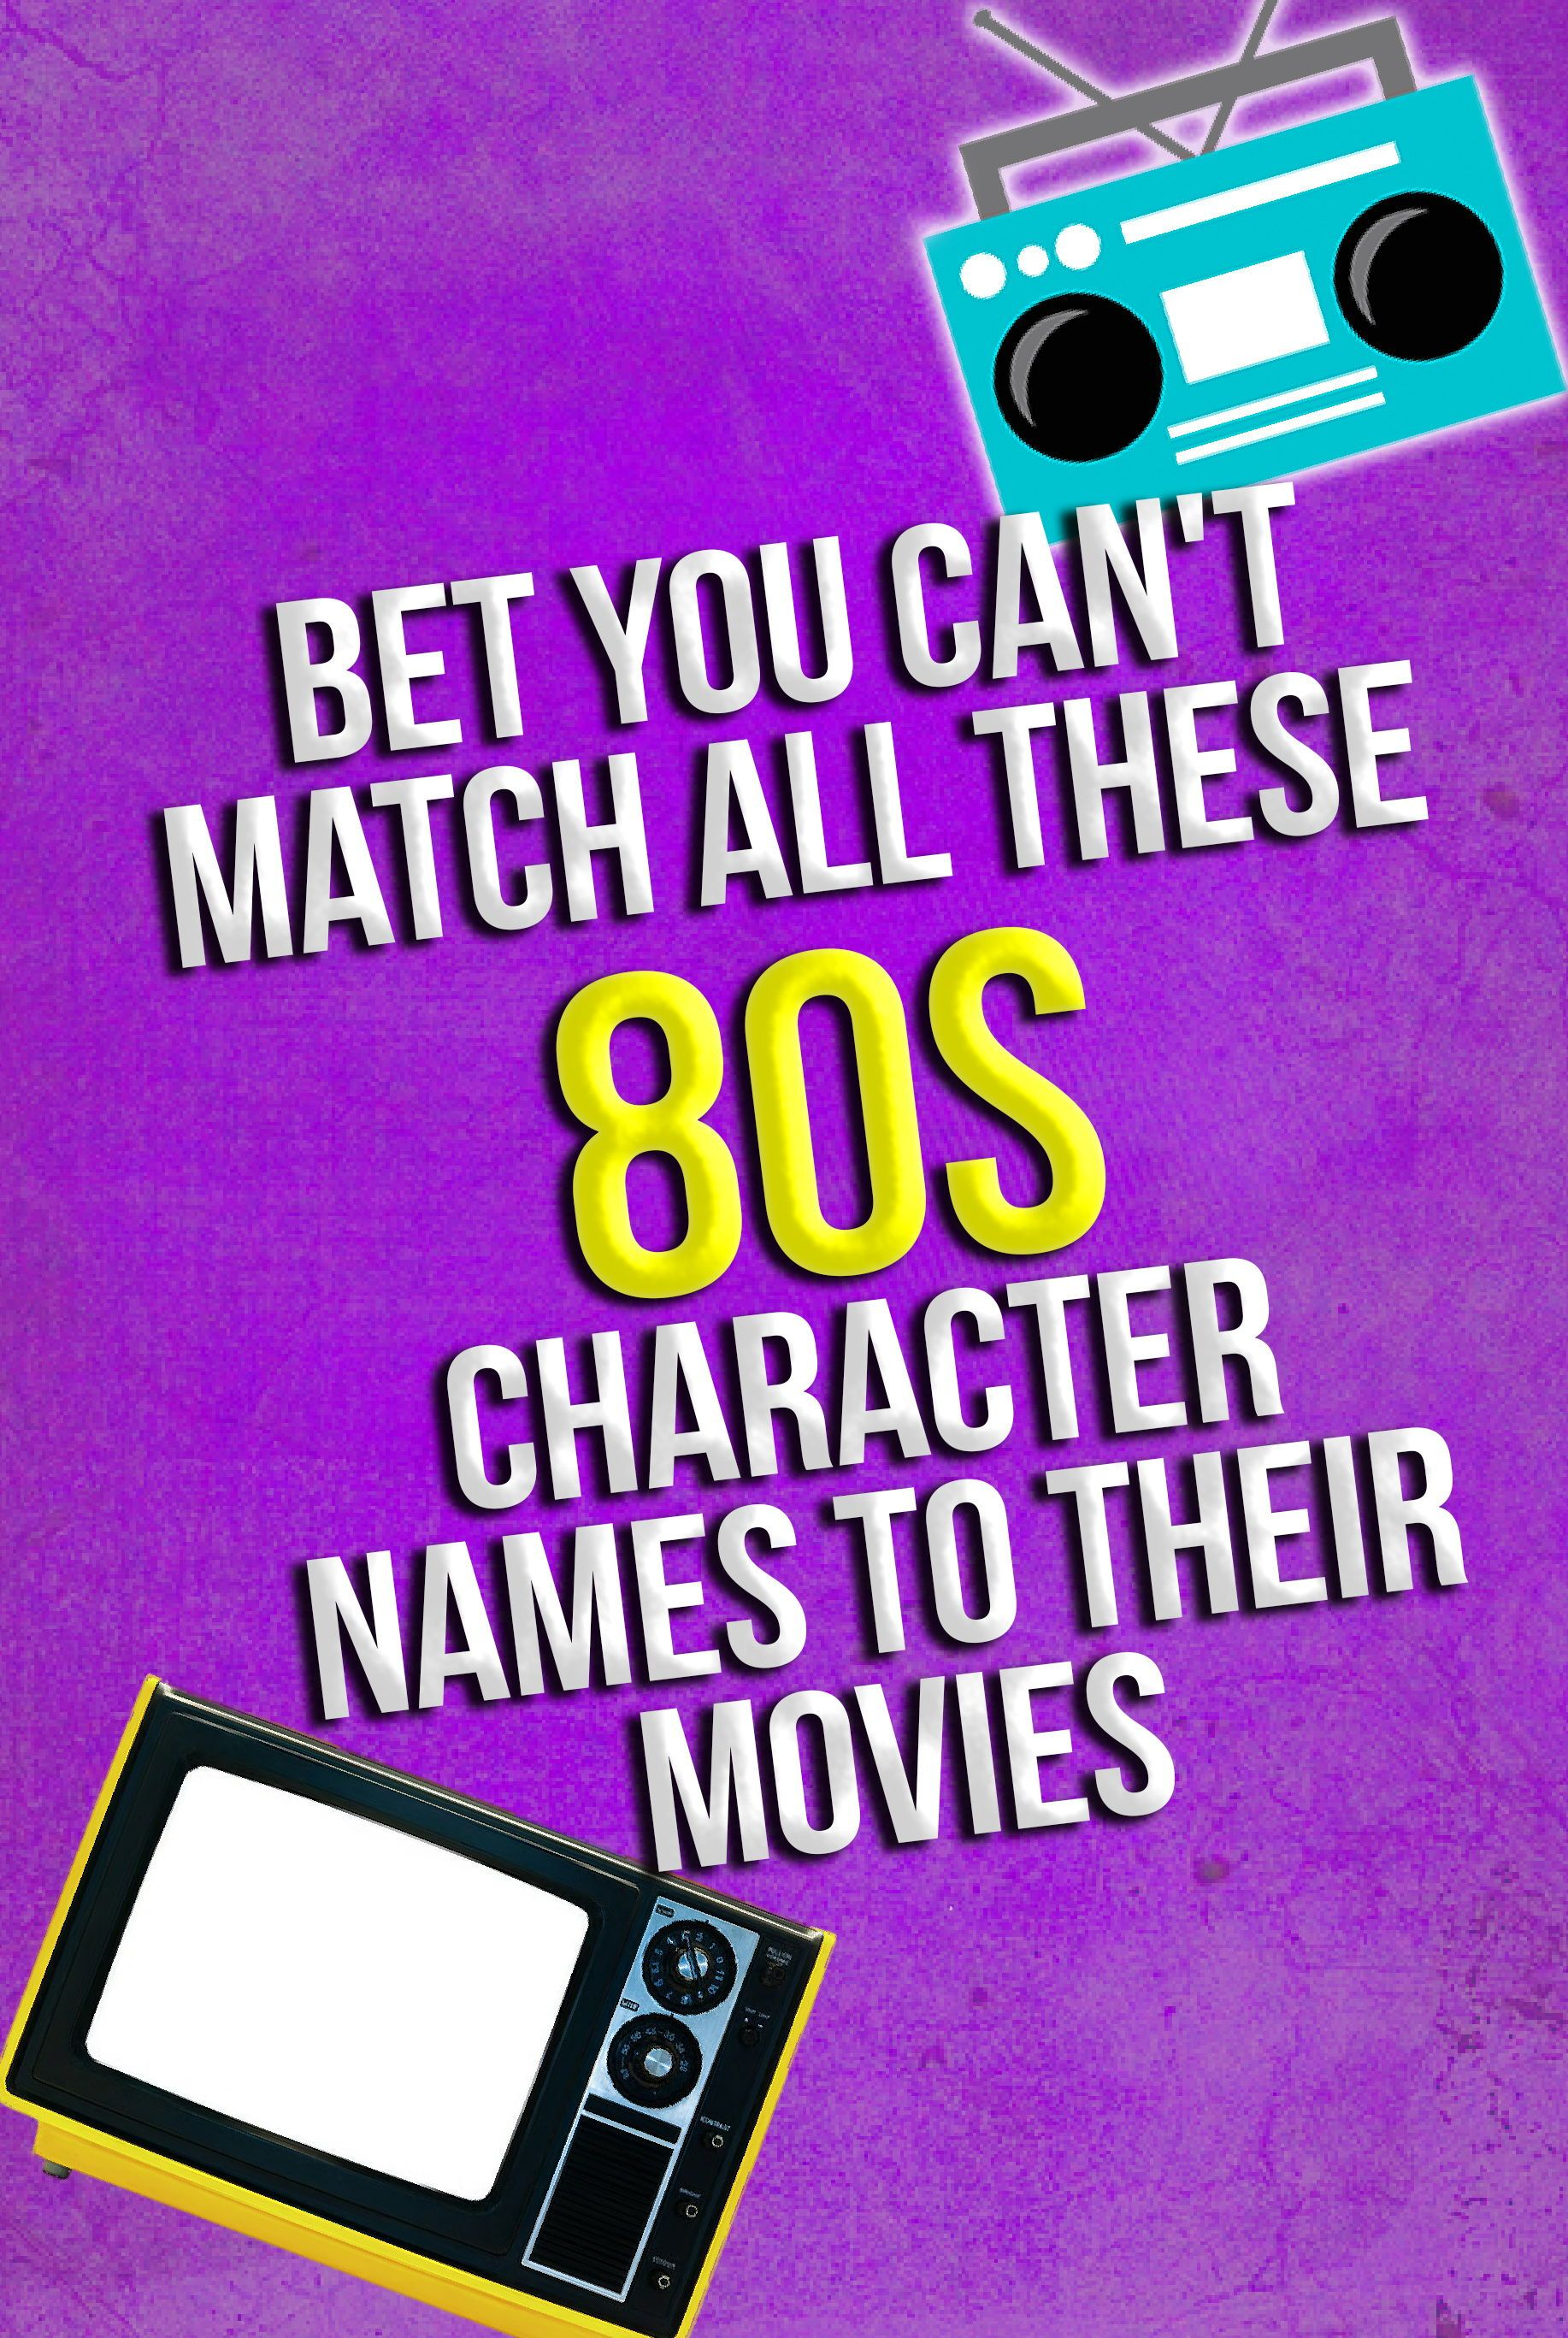 Quiz: Bet You Can't Match All These 80s Character Names To